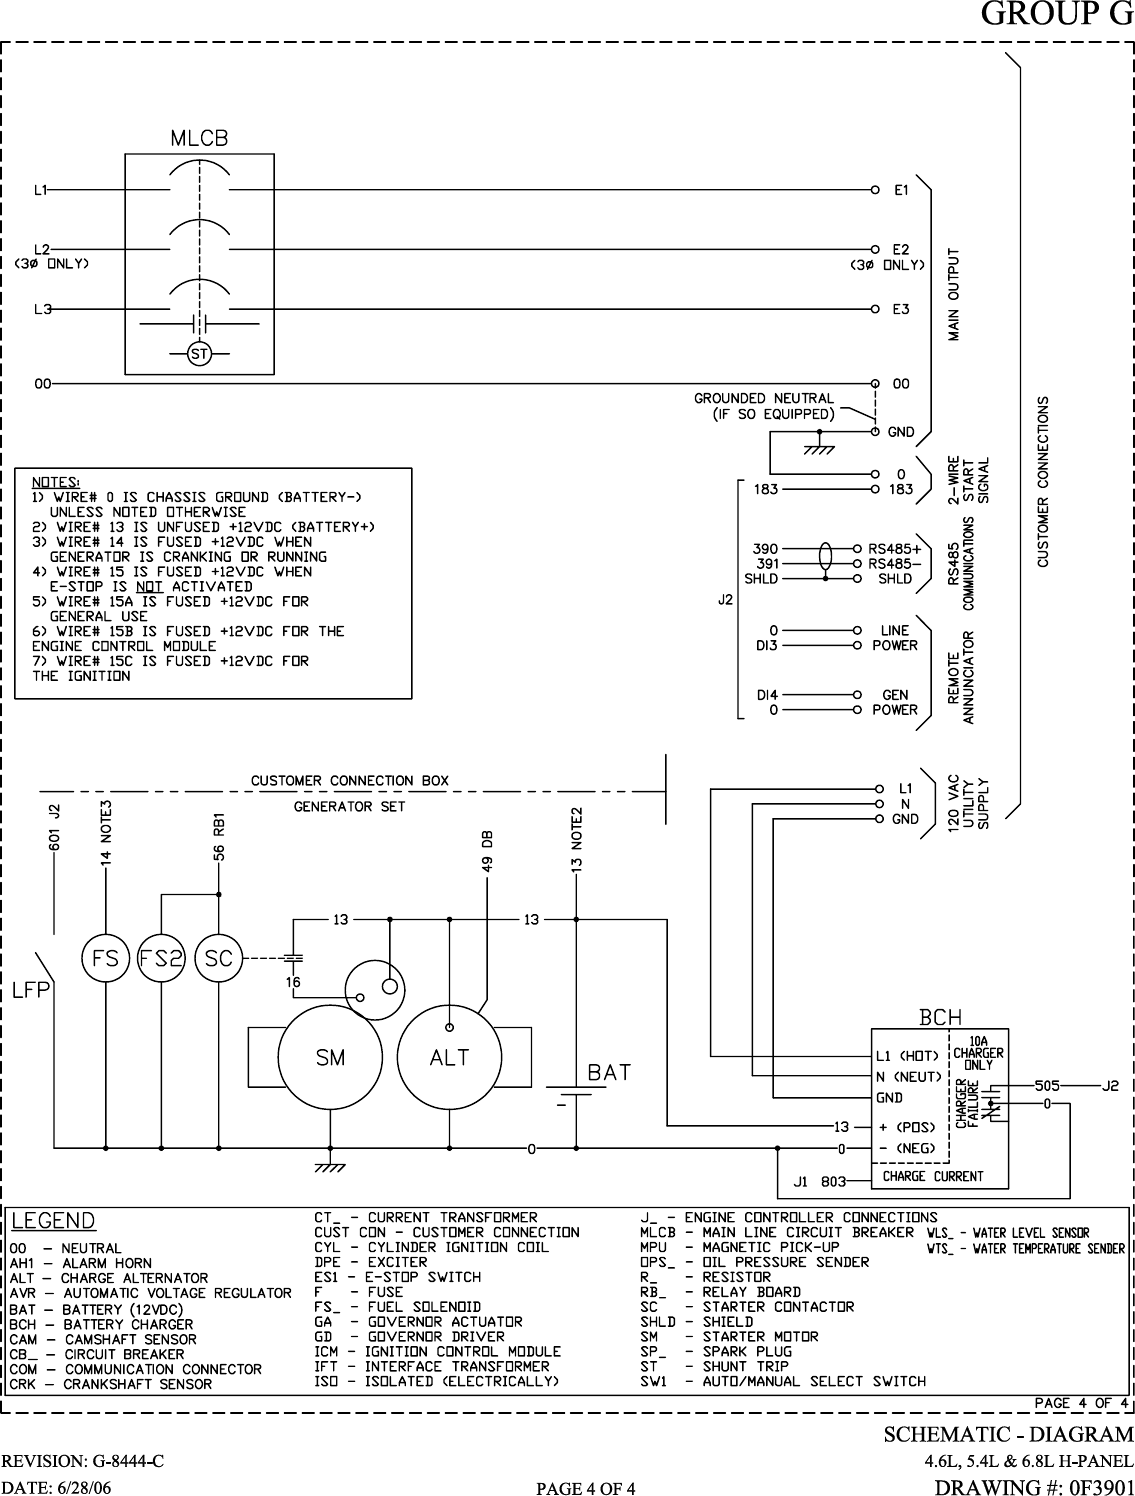 Generac Power Systems 6 8l Users Manual Cover010 Rev0 8 05 Wiring Harness Connectors Standby Generator Sets